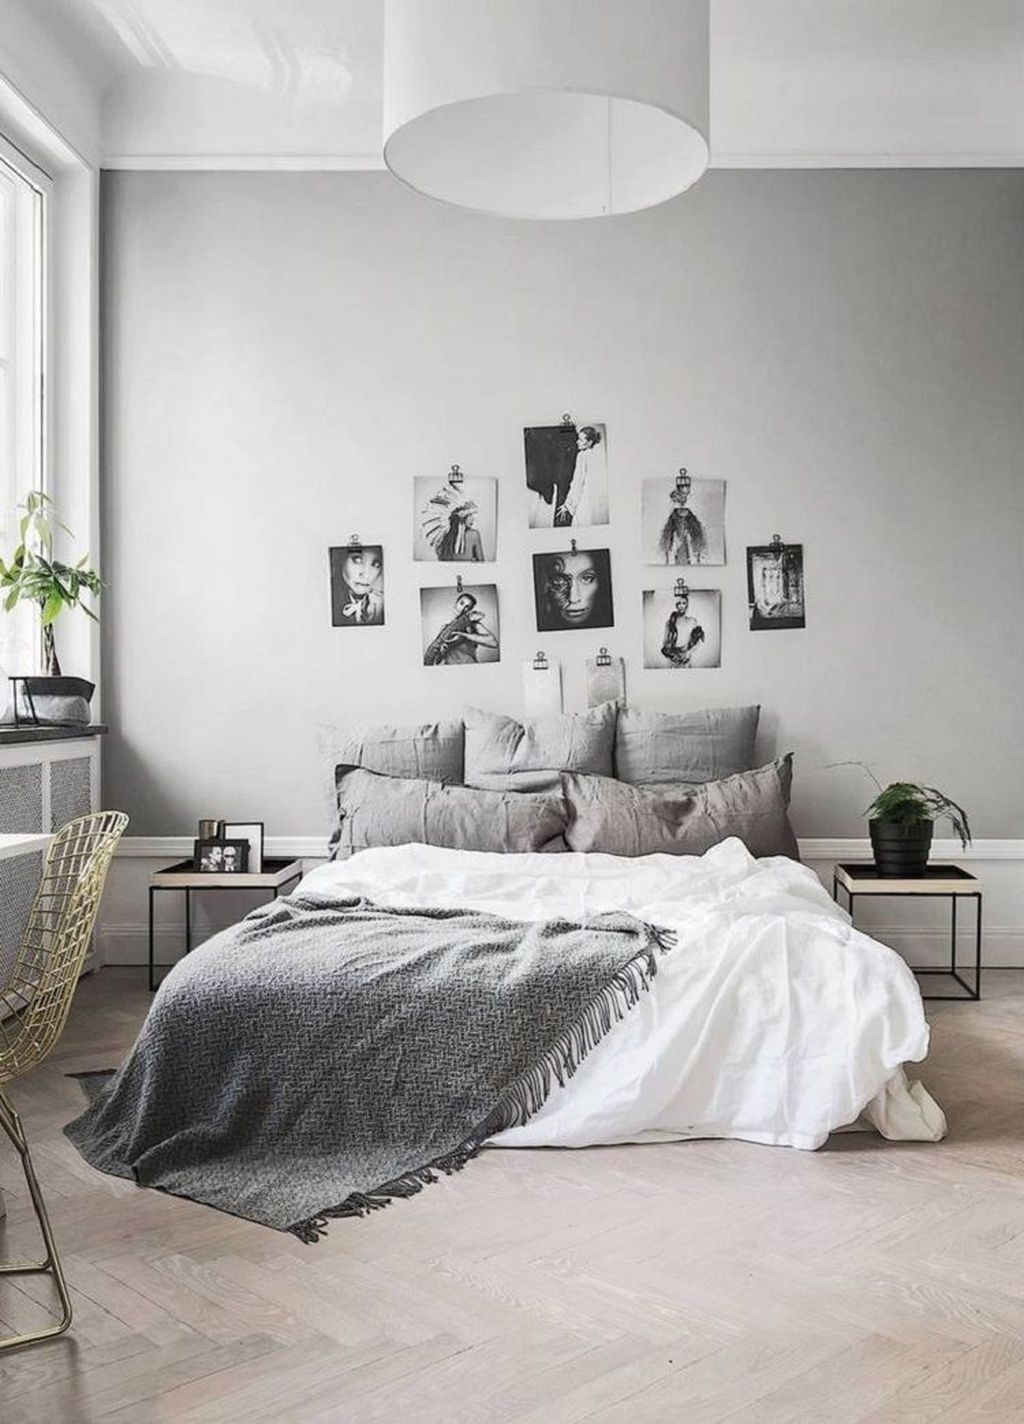 44 Amazing Apartment Bedroom Ideas On A Budget